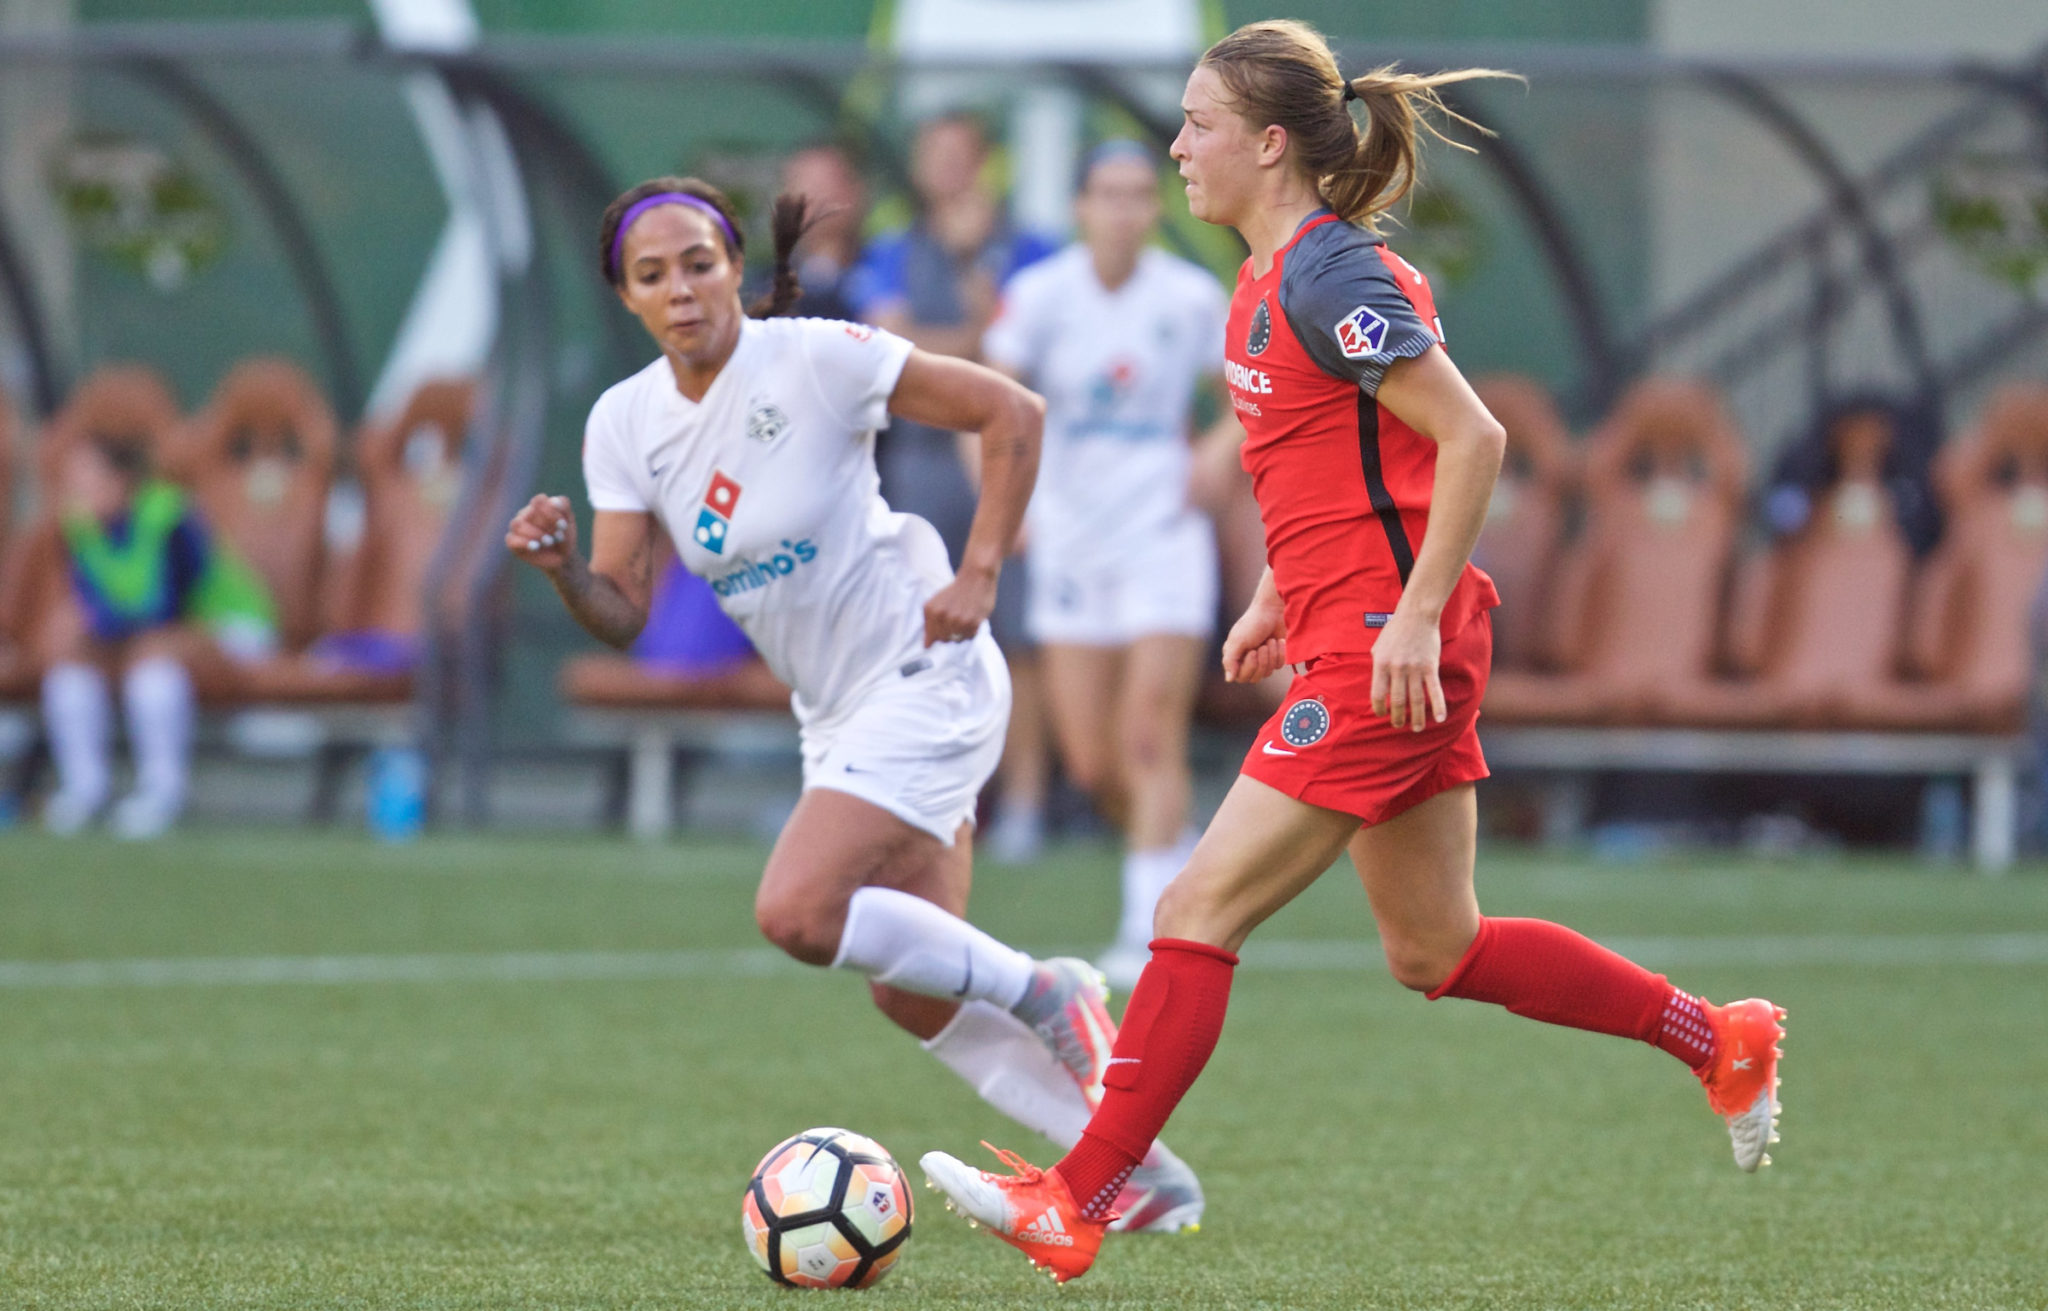 Emily Sonnett and the Portland Thorns are looking to score more goals and win more games as they approach the second-half of the 2017 NWSL Season (Credit: Thorns FC and Craig Mitchelldyer)